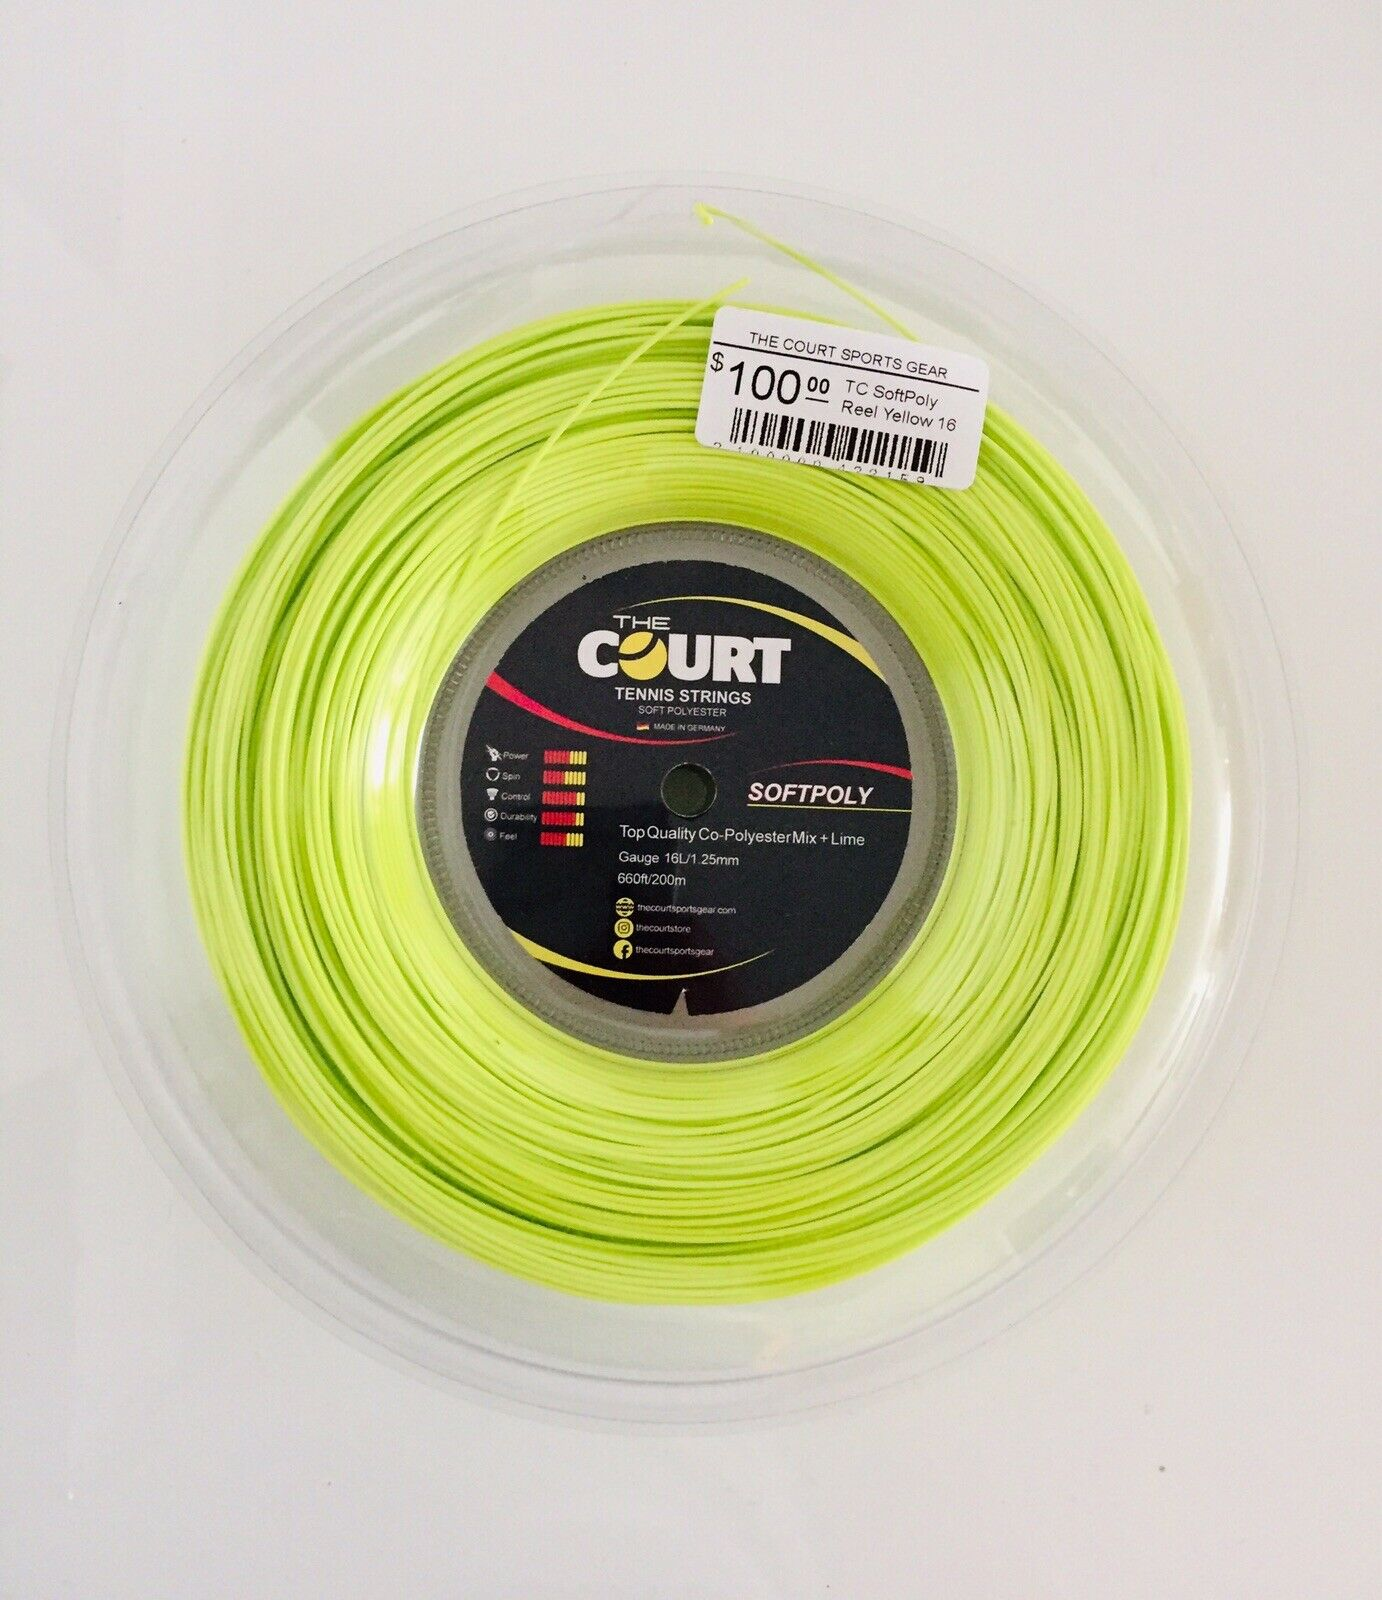 The Court Tennis Strings Reel Yellow SoftPoly 16L 1.25mm